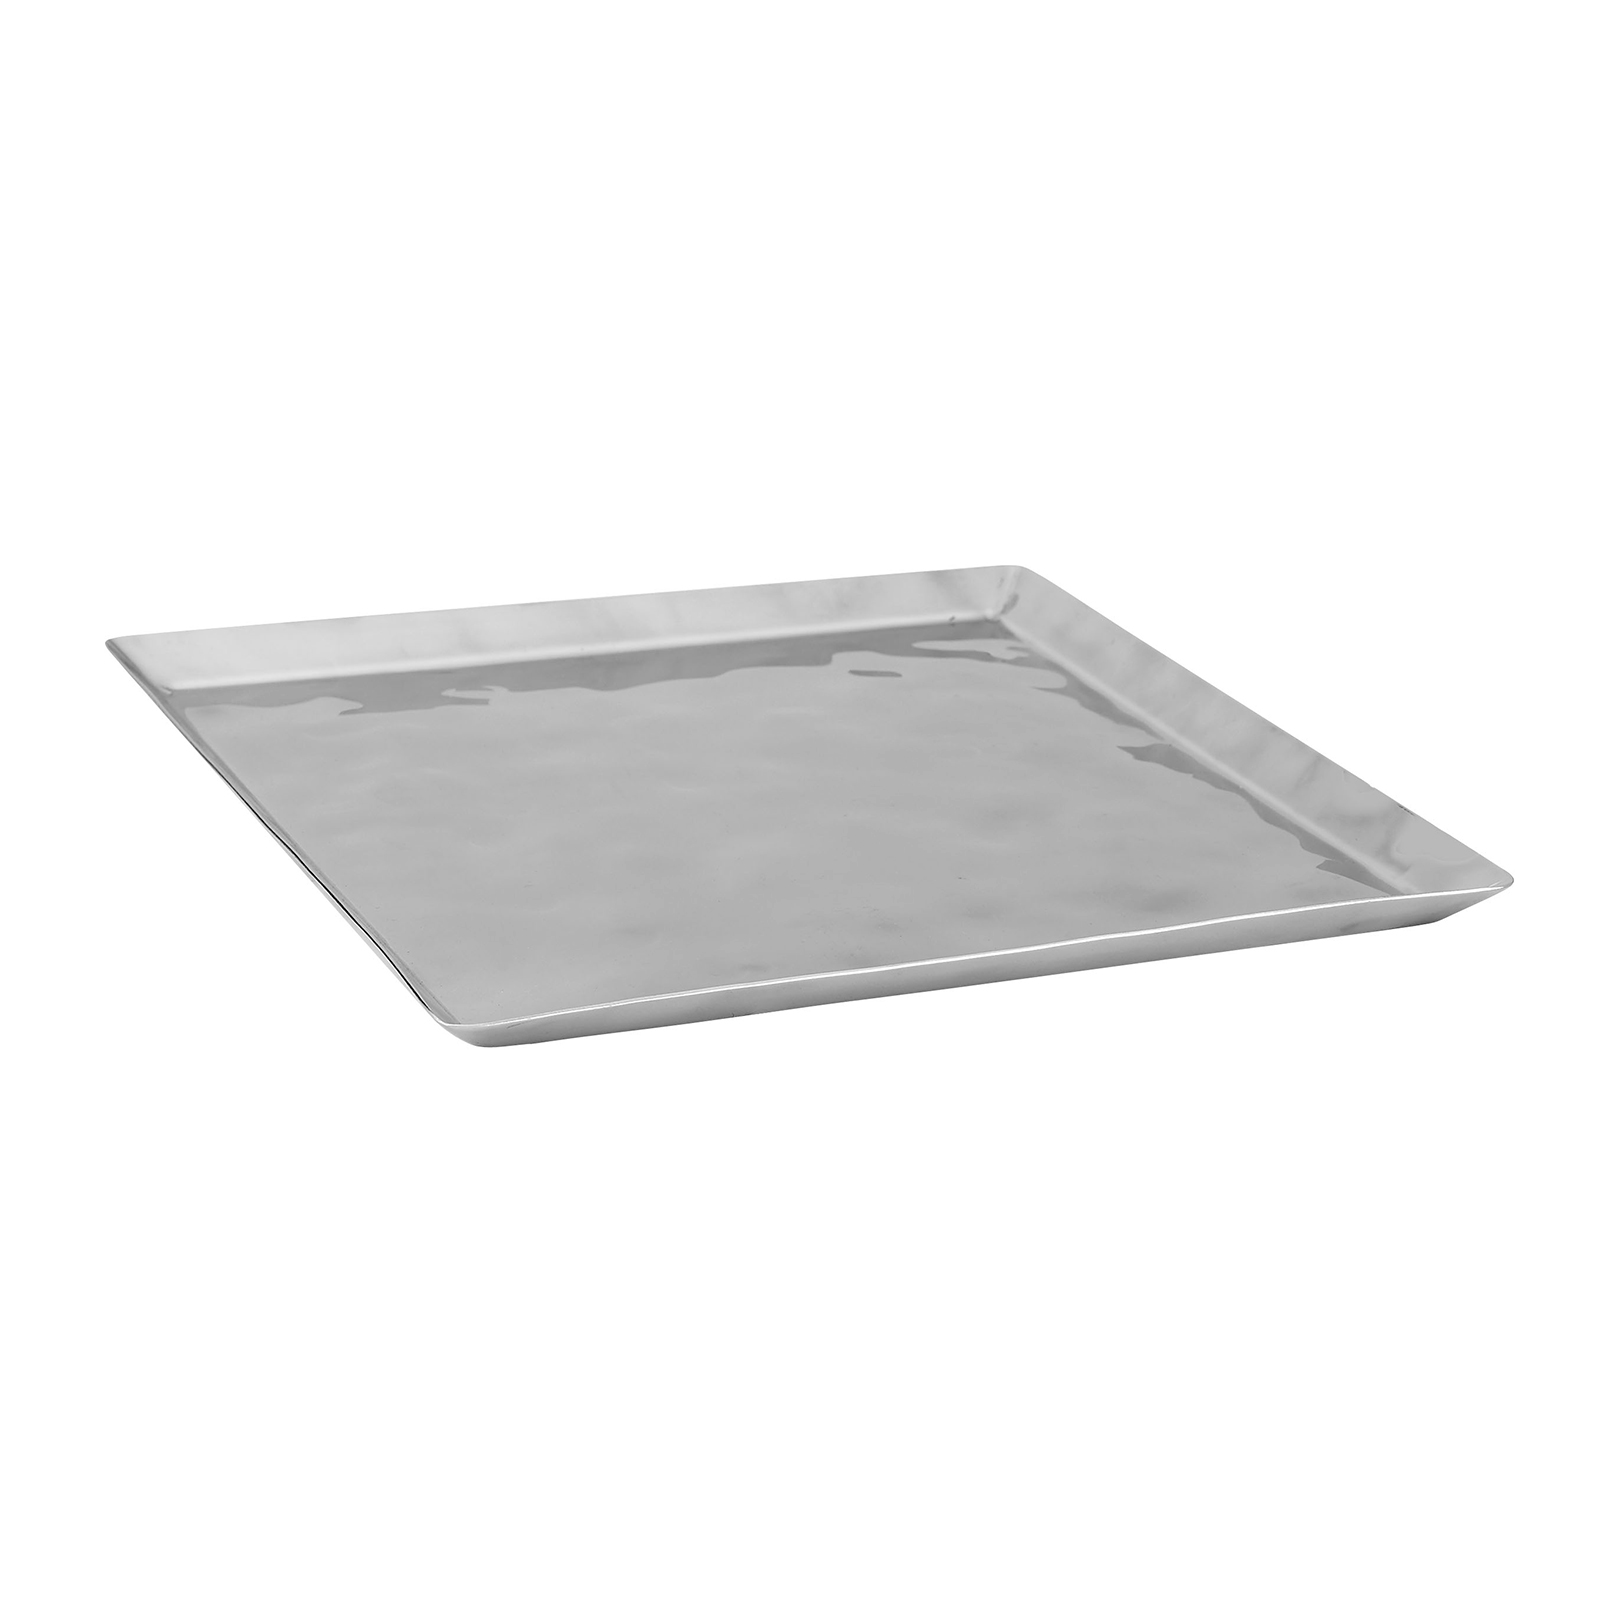 Winco HPS-13 display tray, market / bakery